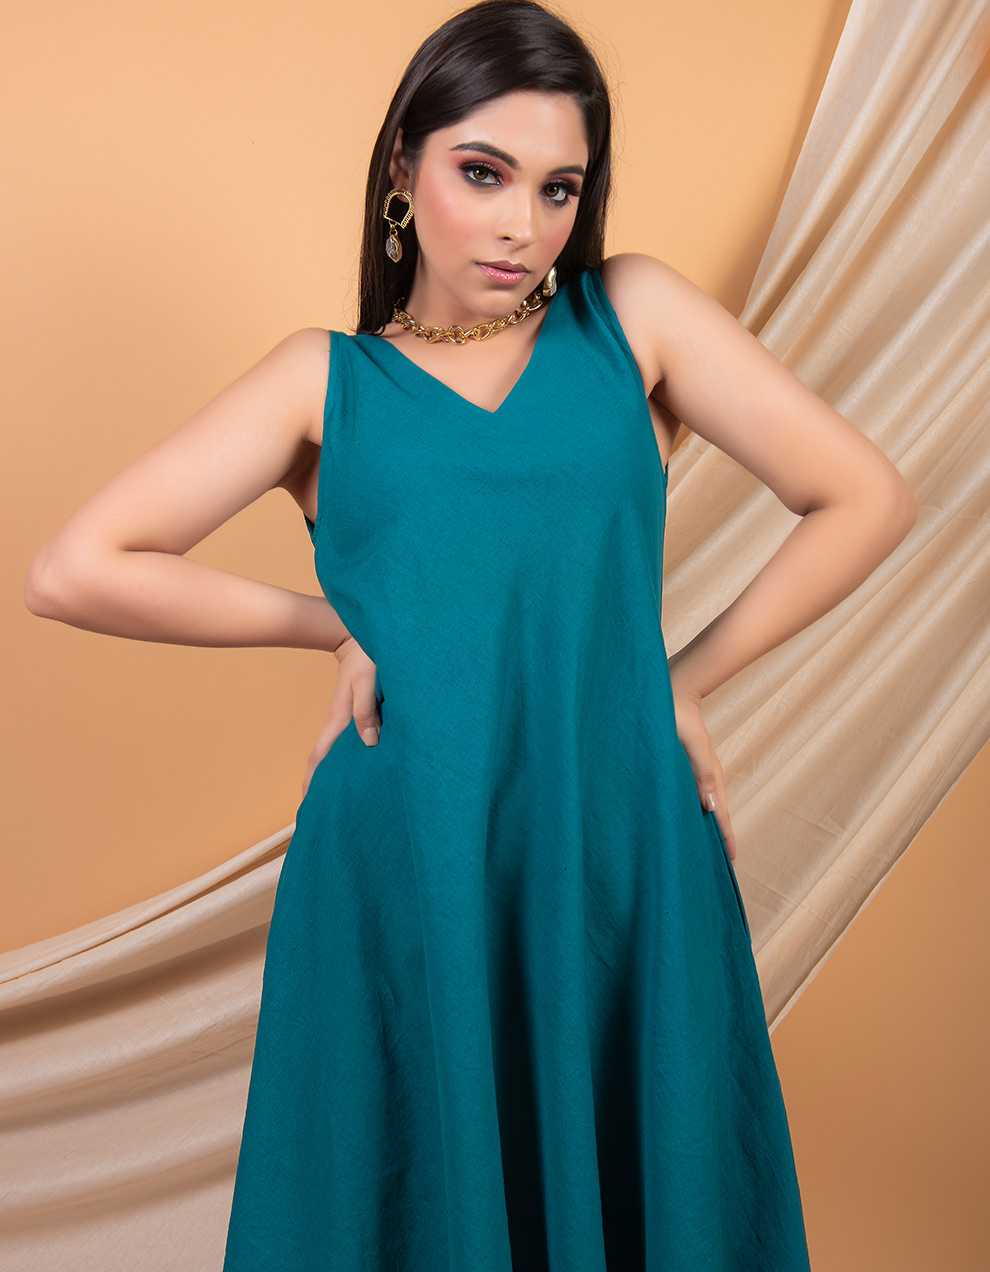 Teal Blue cotton linen A-line dress with pockets in the side